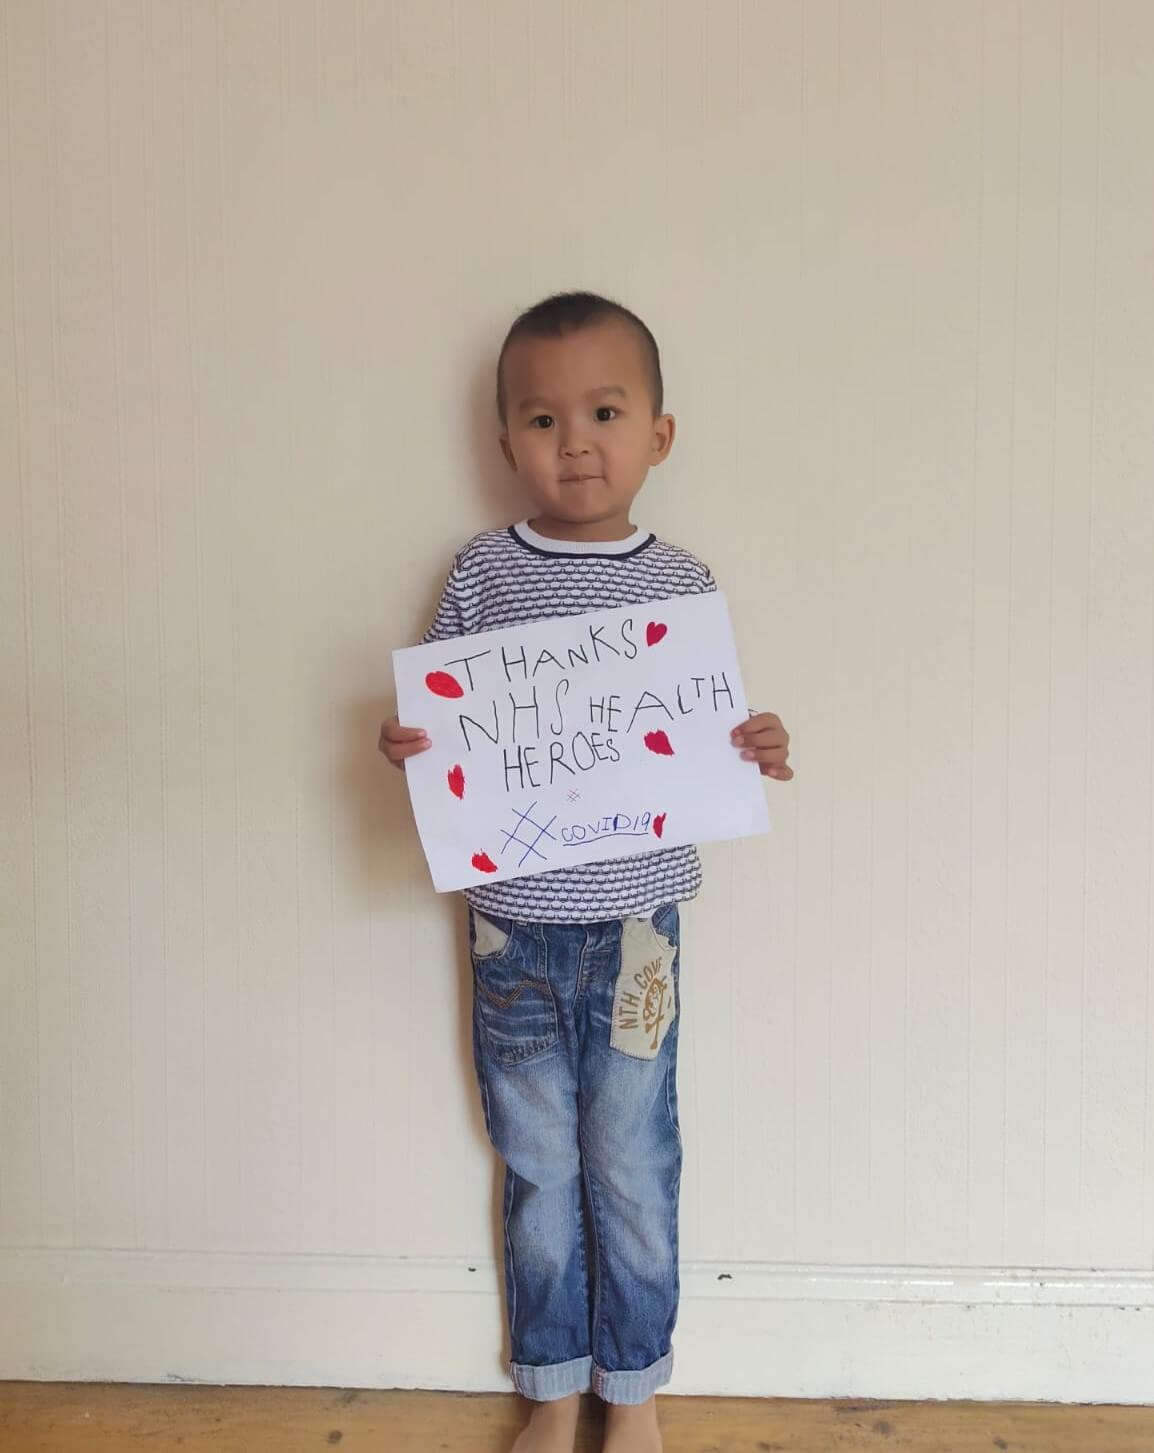 01:A young boy showing his support for the NHS